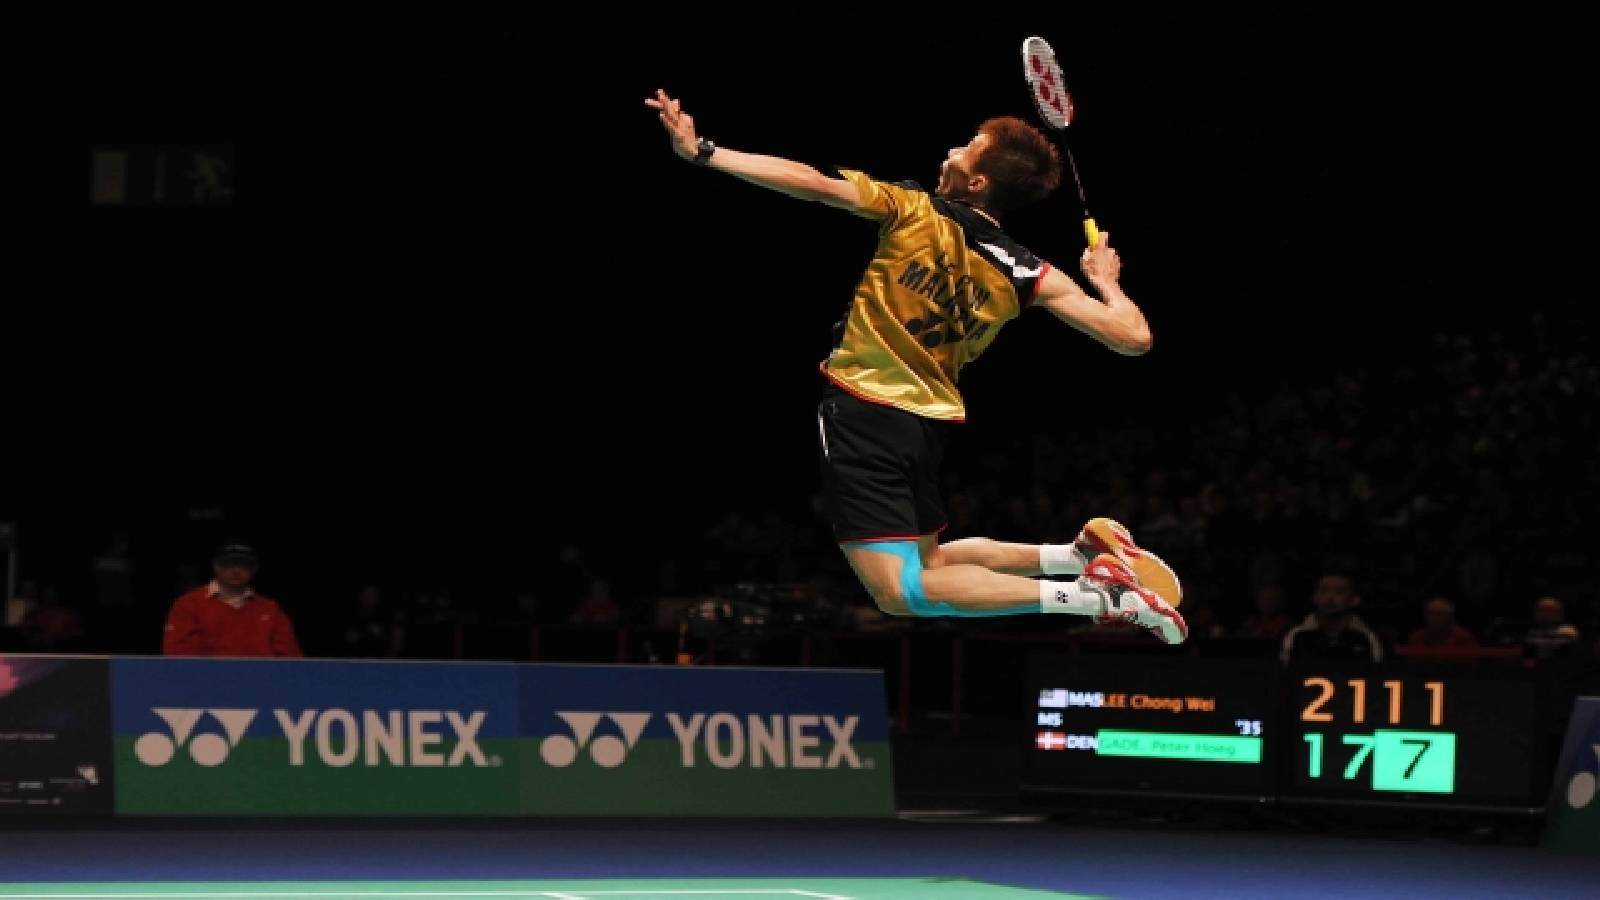 What STRING and TENSION does Lin Dan & Lee Chong Wei use ?